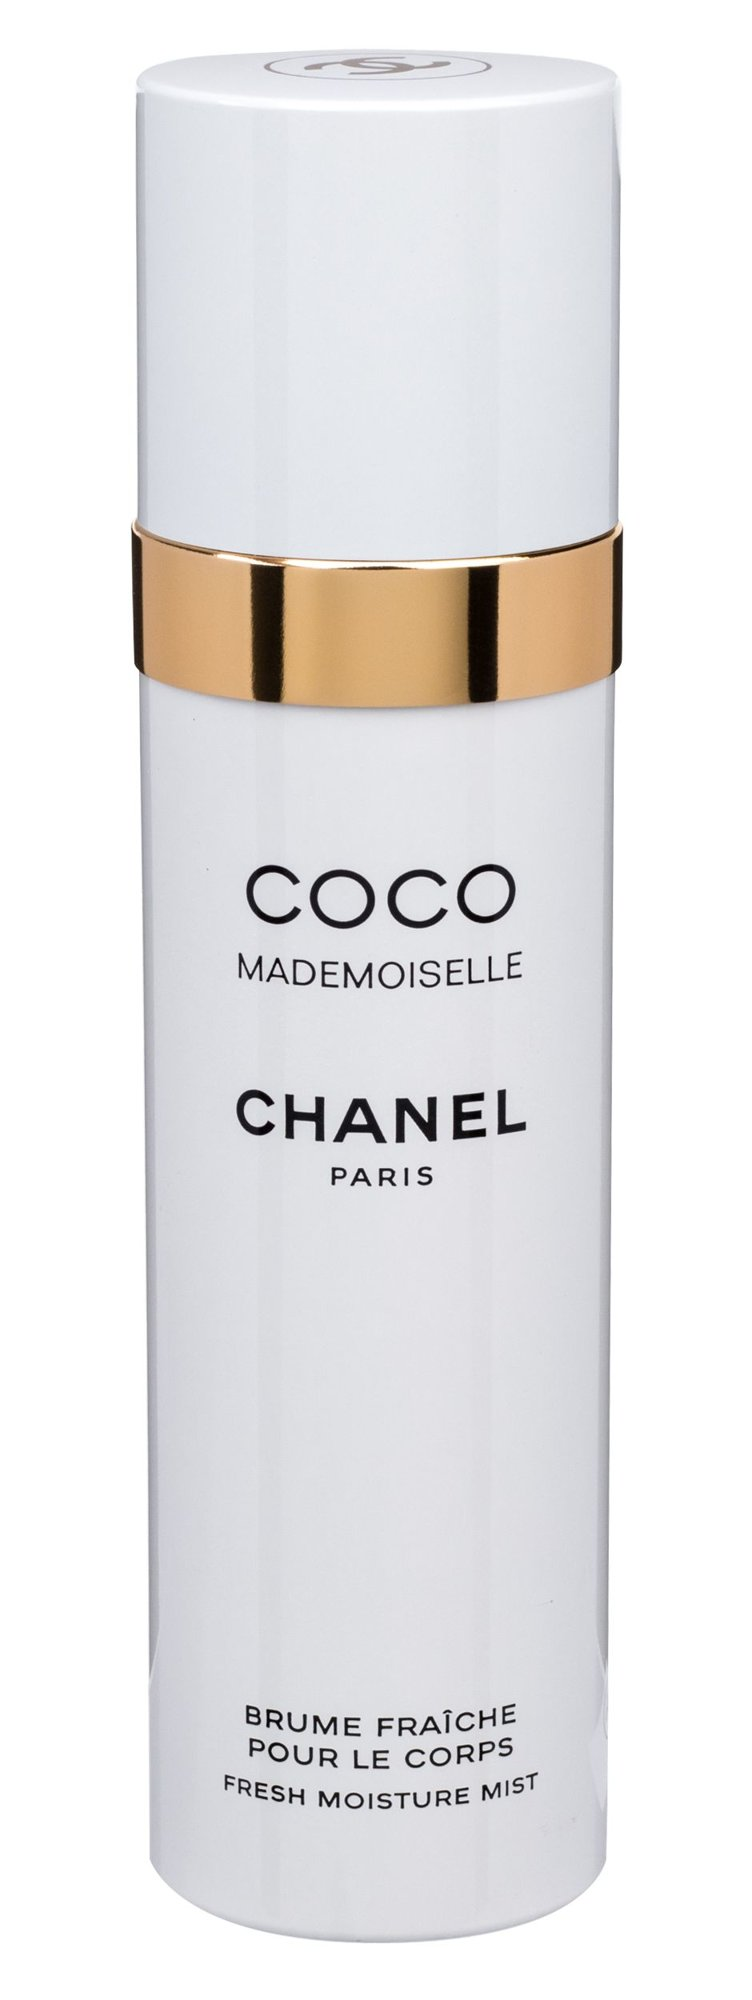 Chanel Coco Mademoiselle Nourishing body spray 100ml